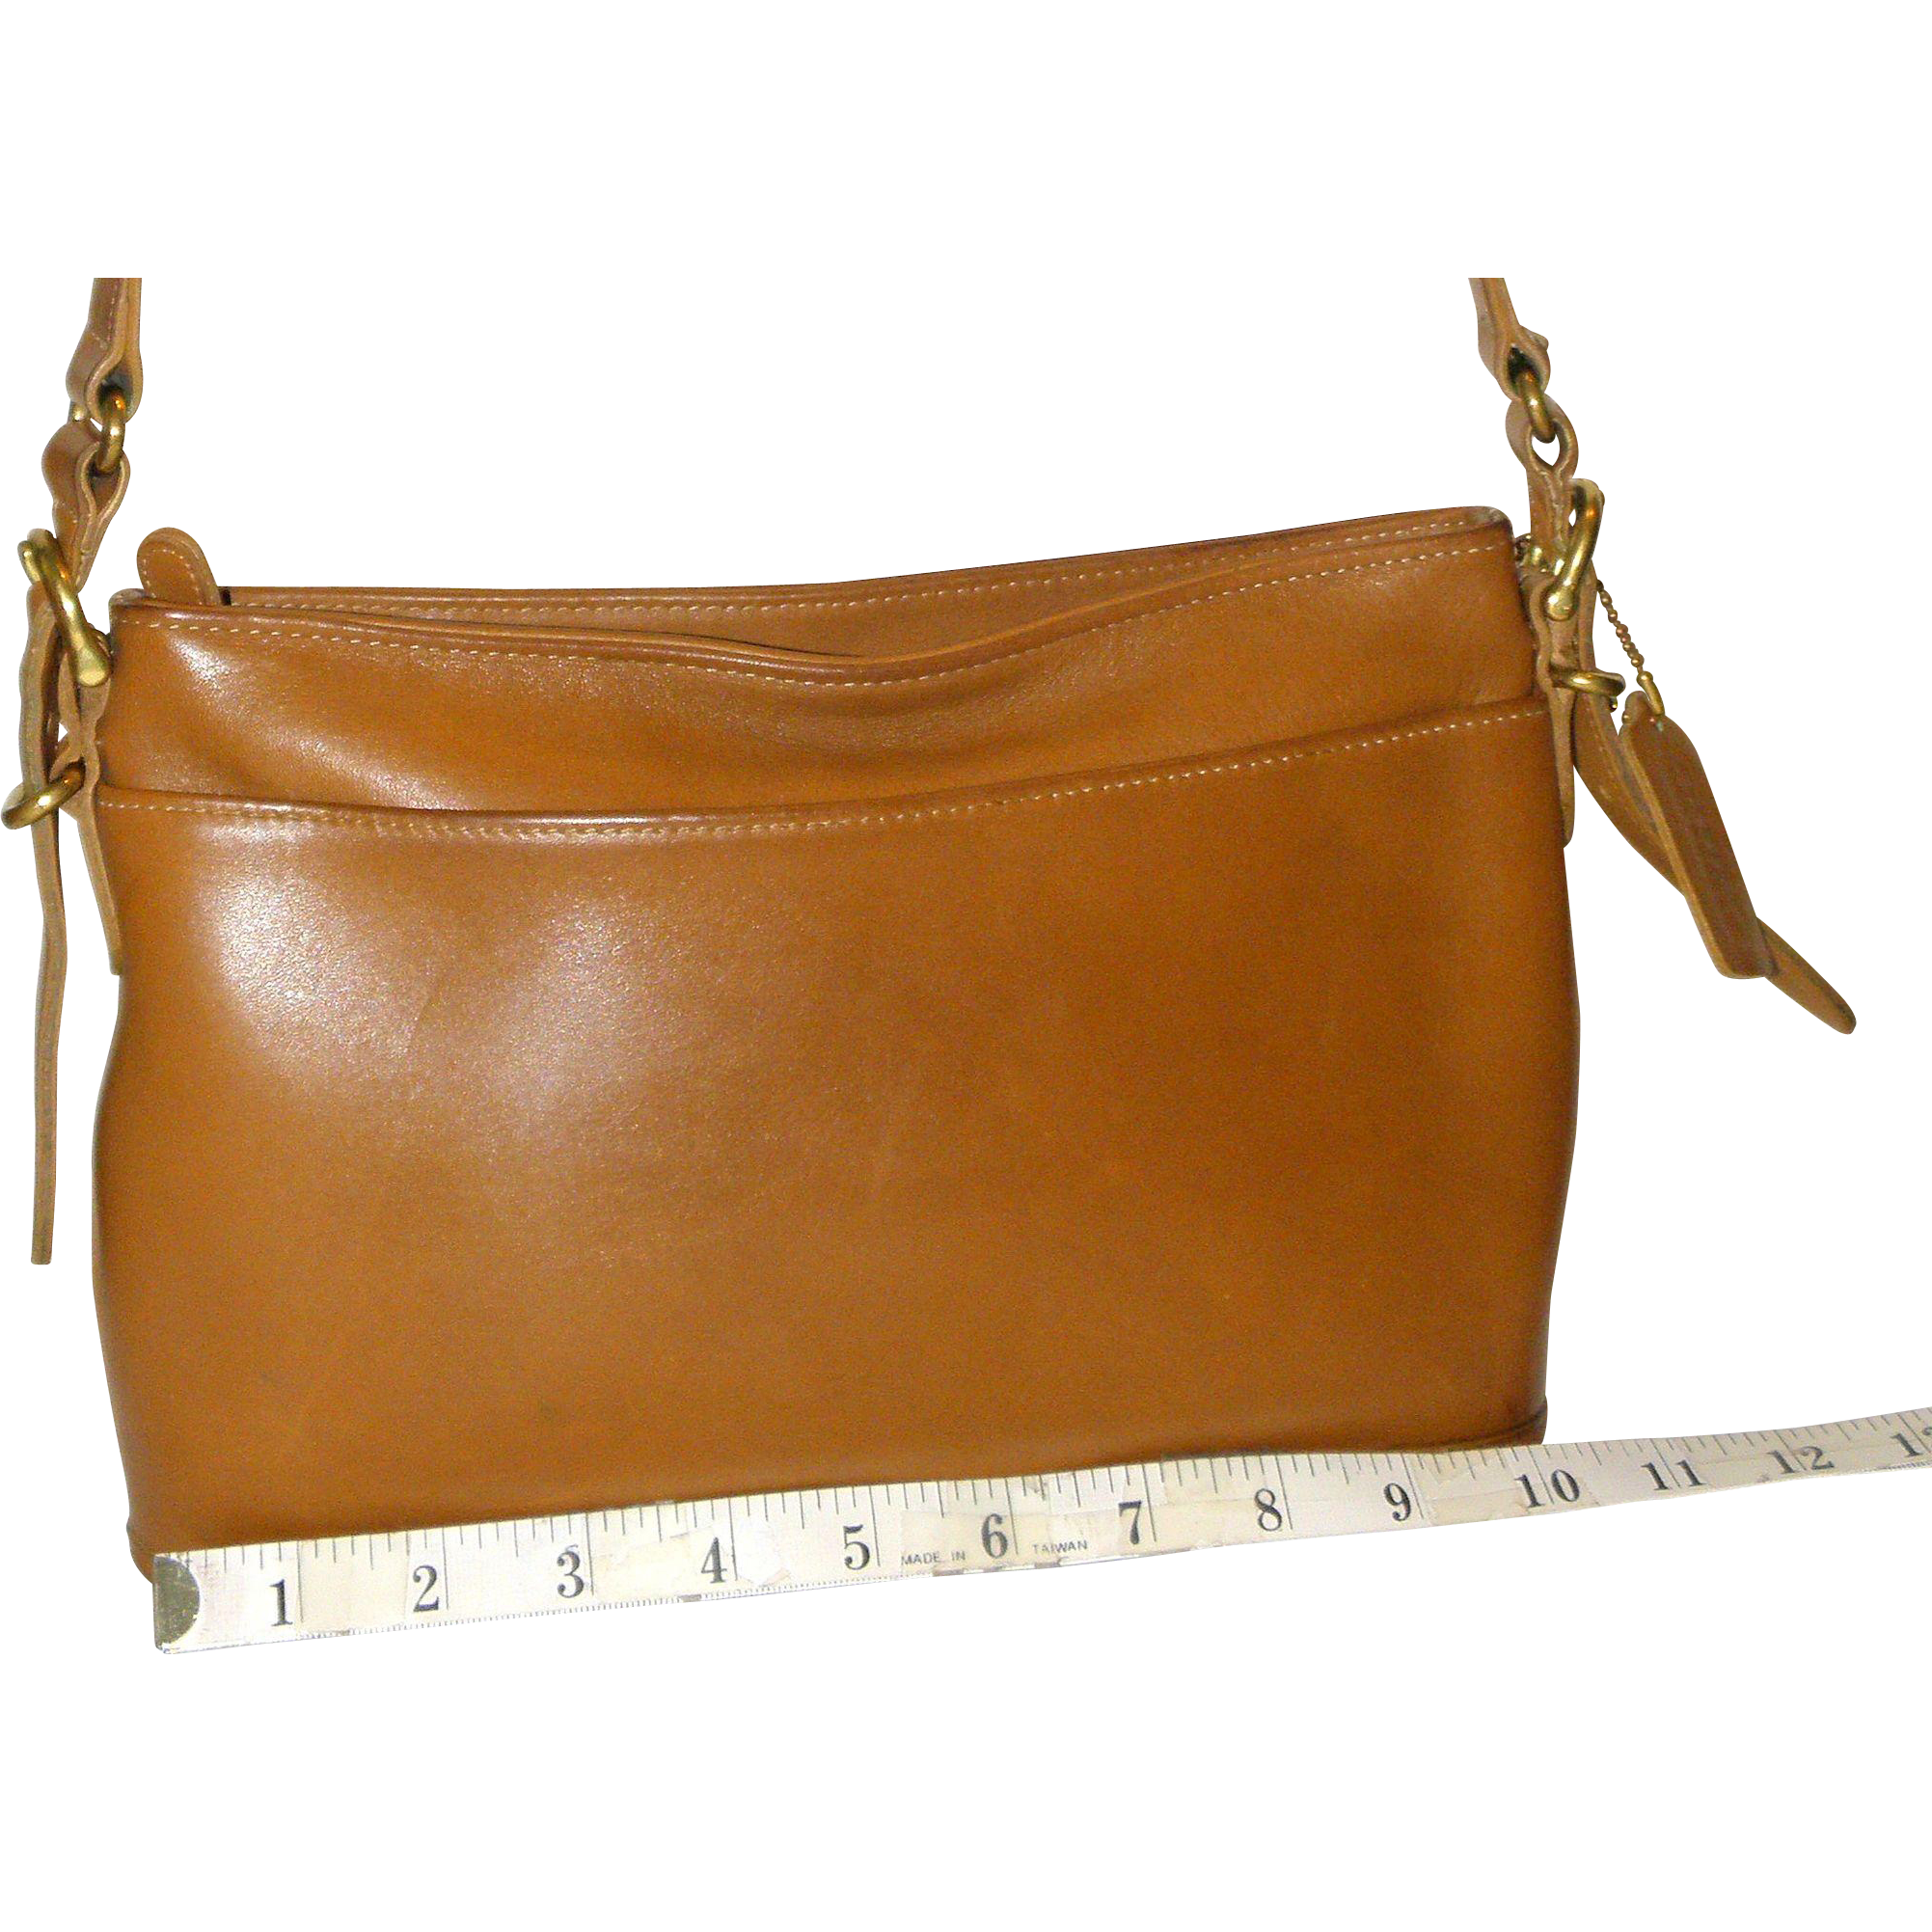 Vintage Coach Equestrian Zip U.S. Model NOW 50% OFF